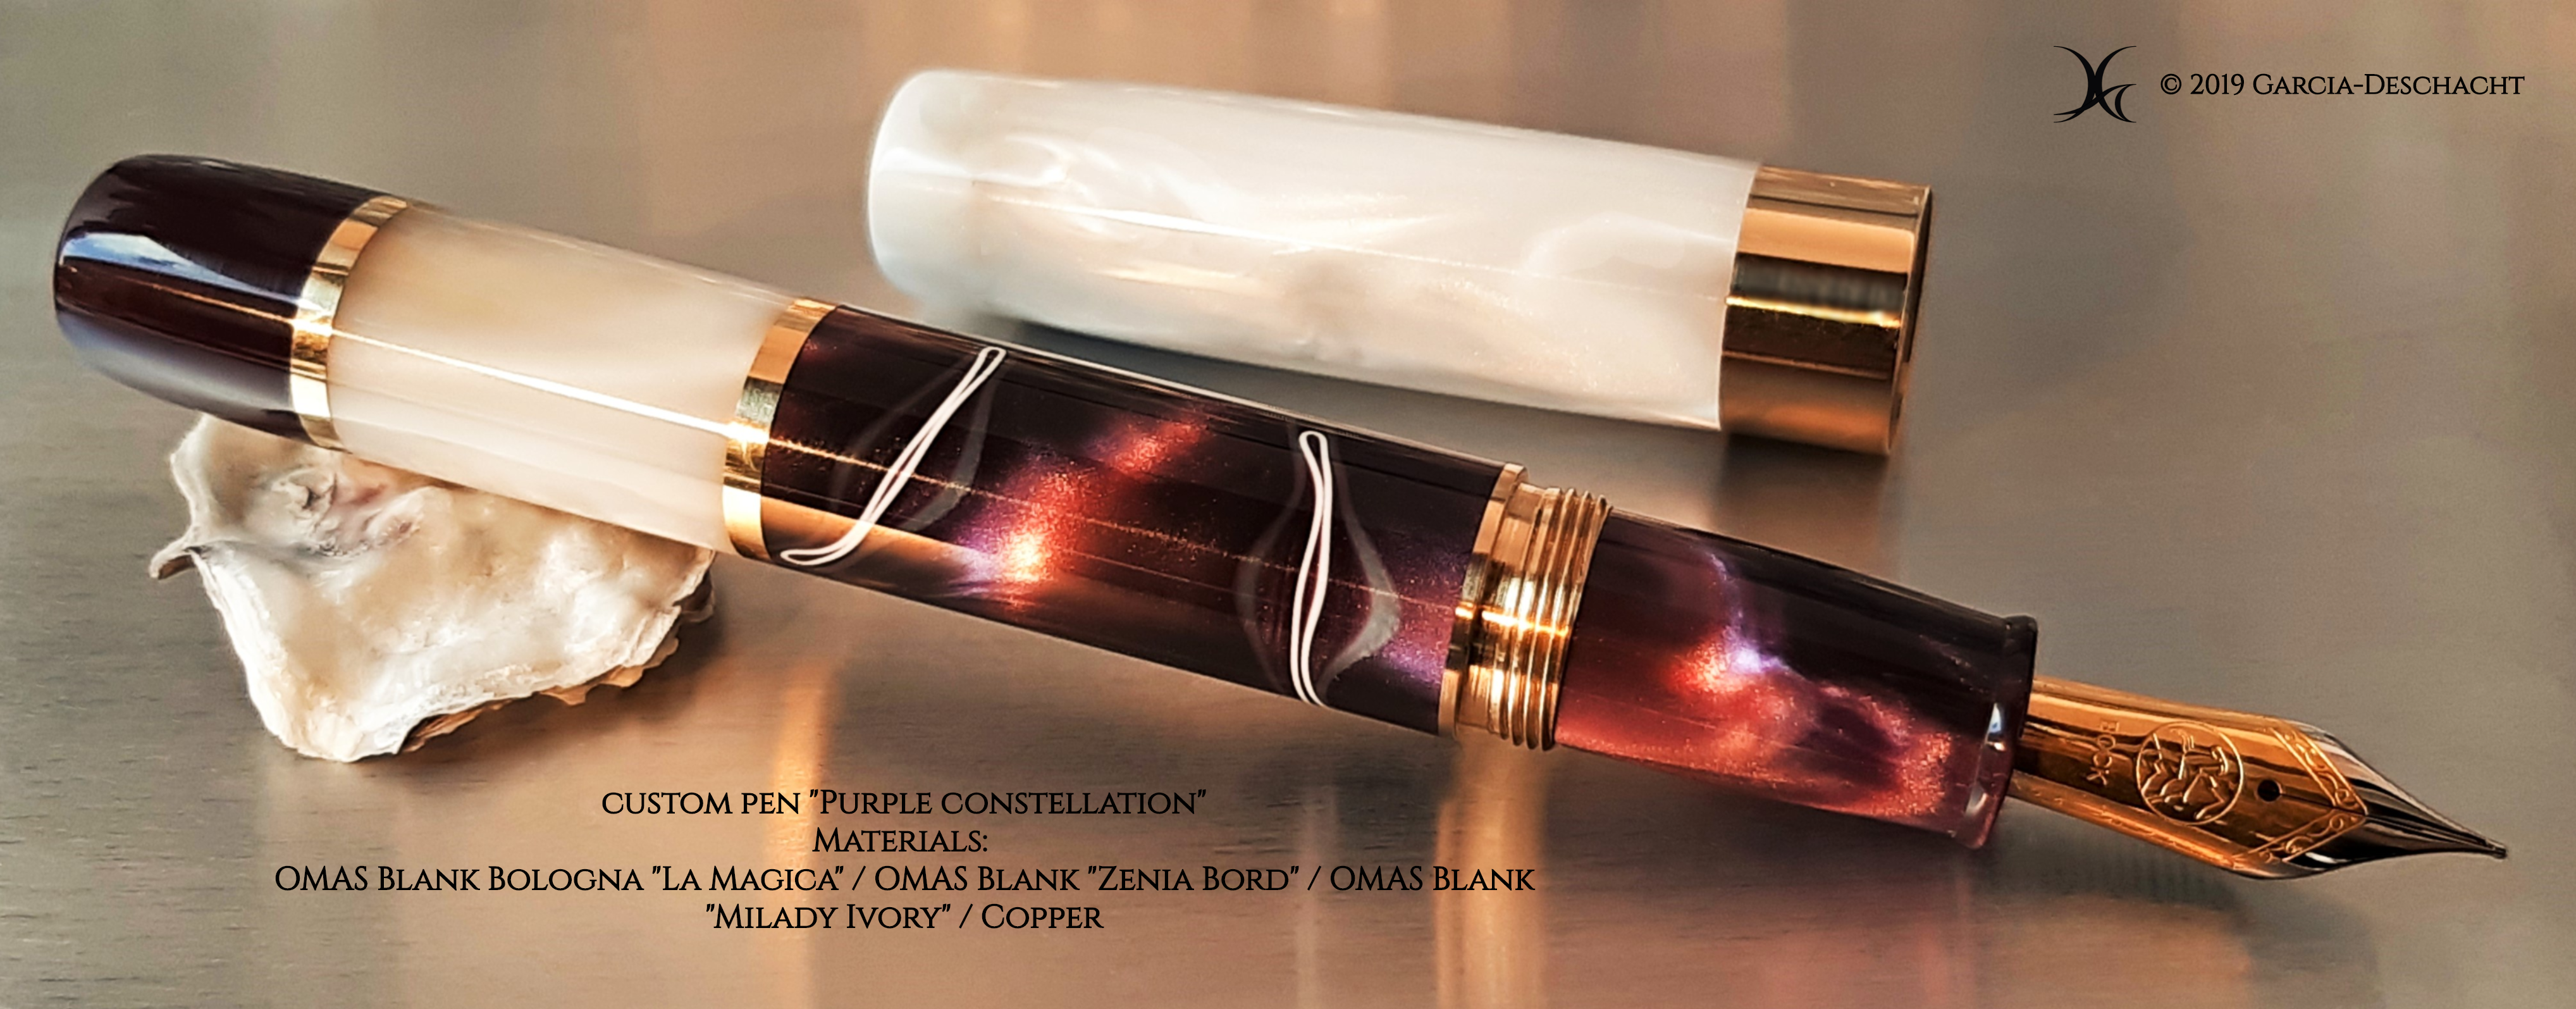 Custom-Pen-Purple-Constellation